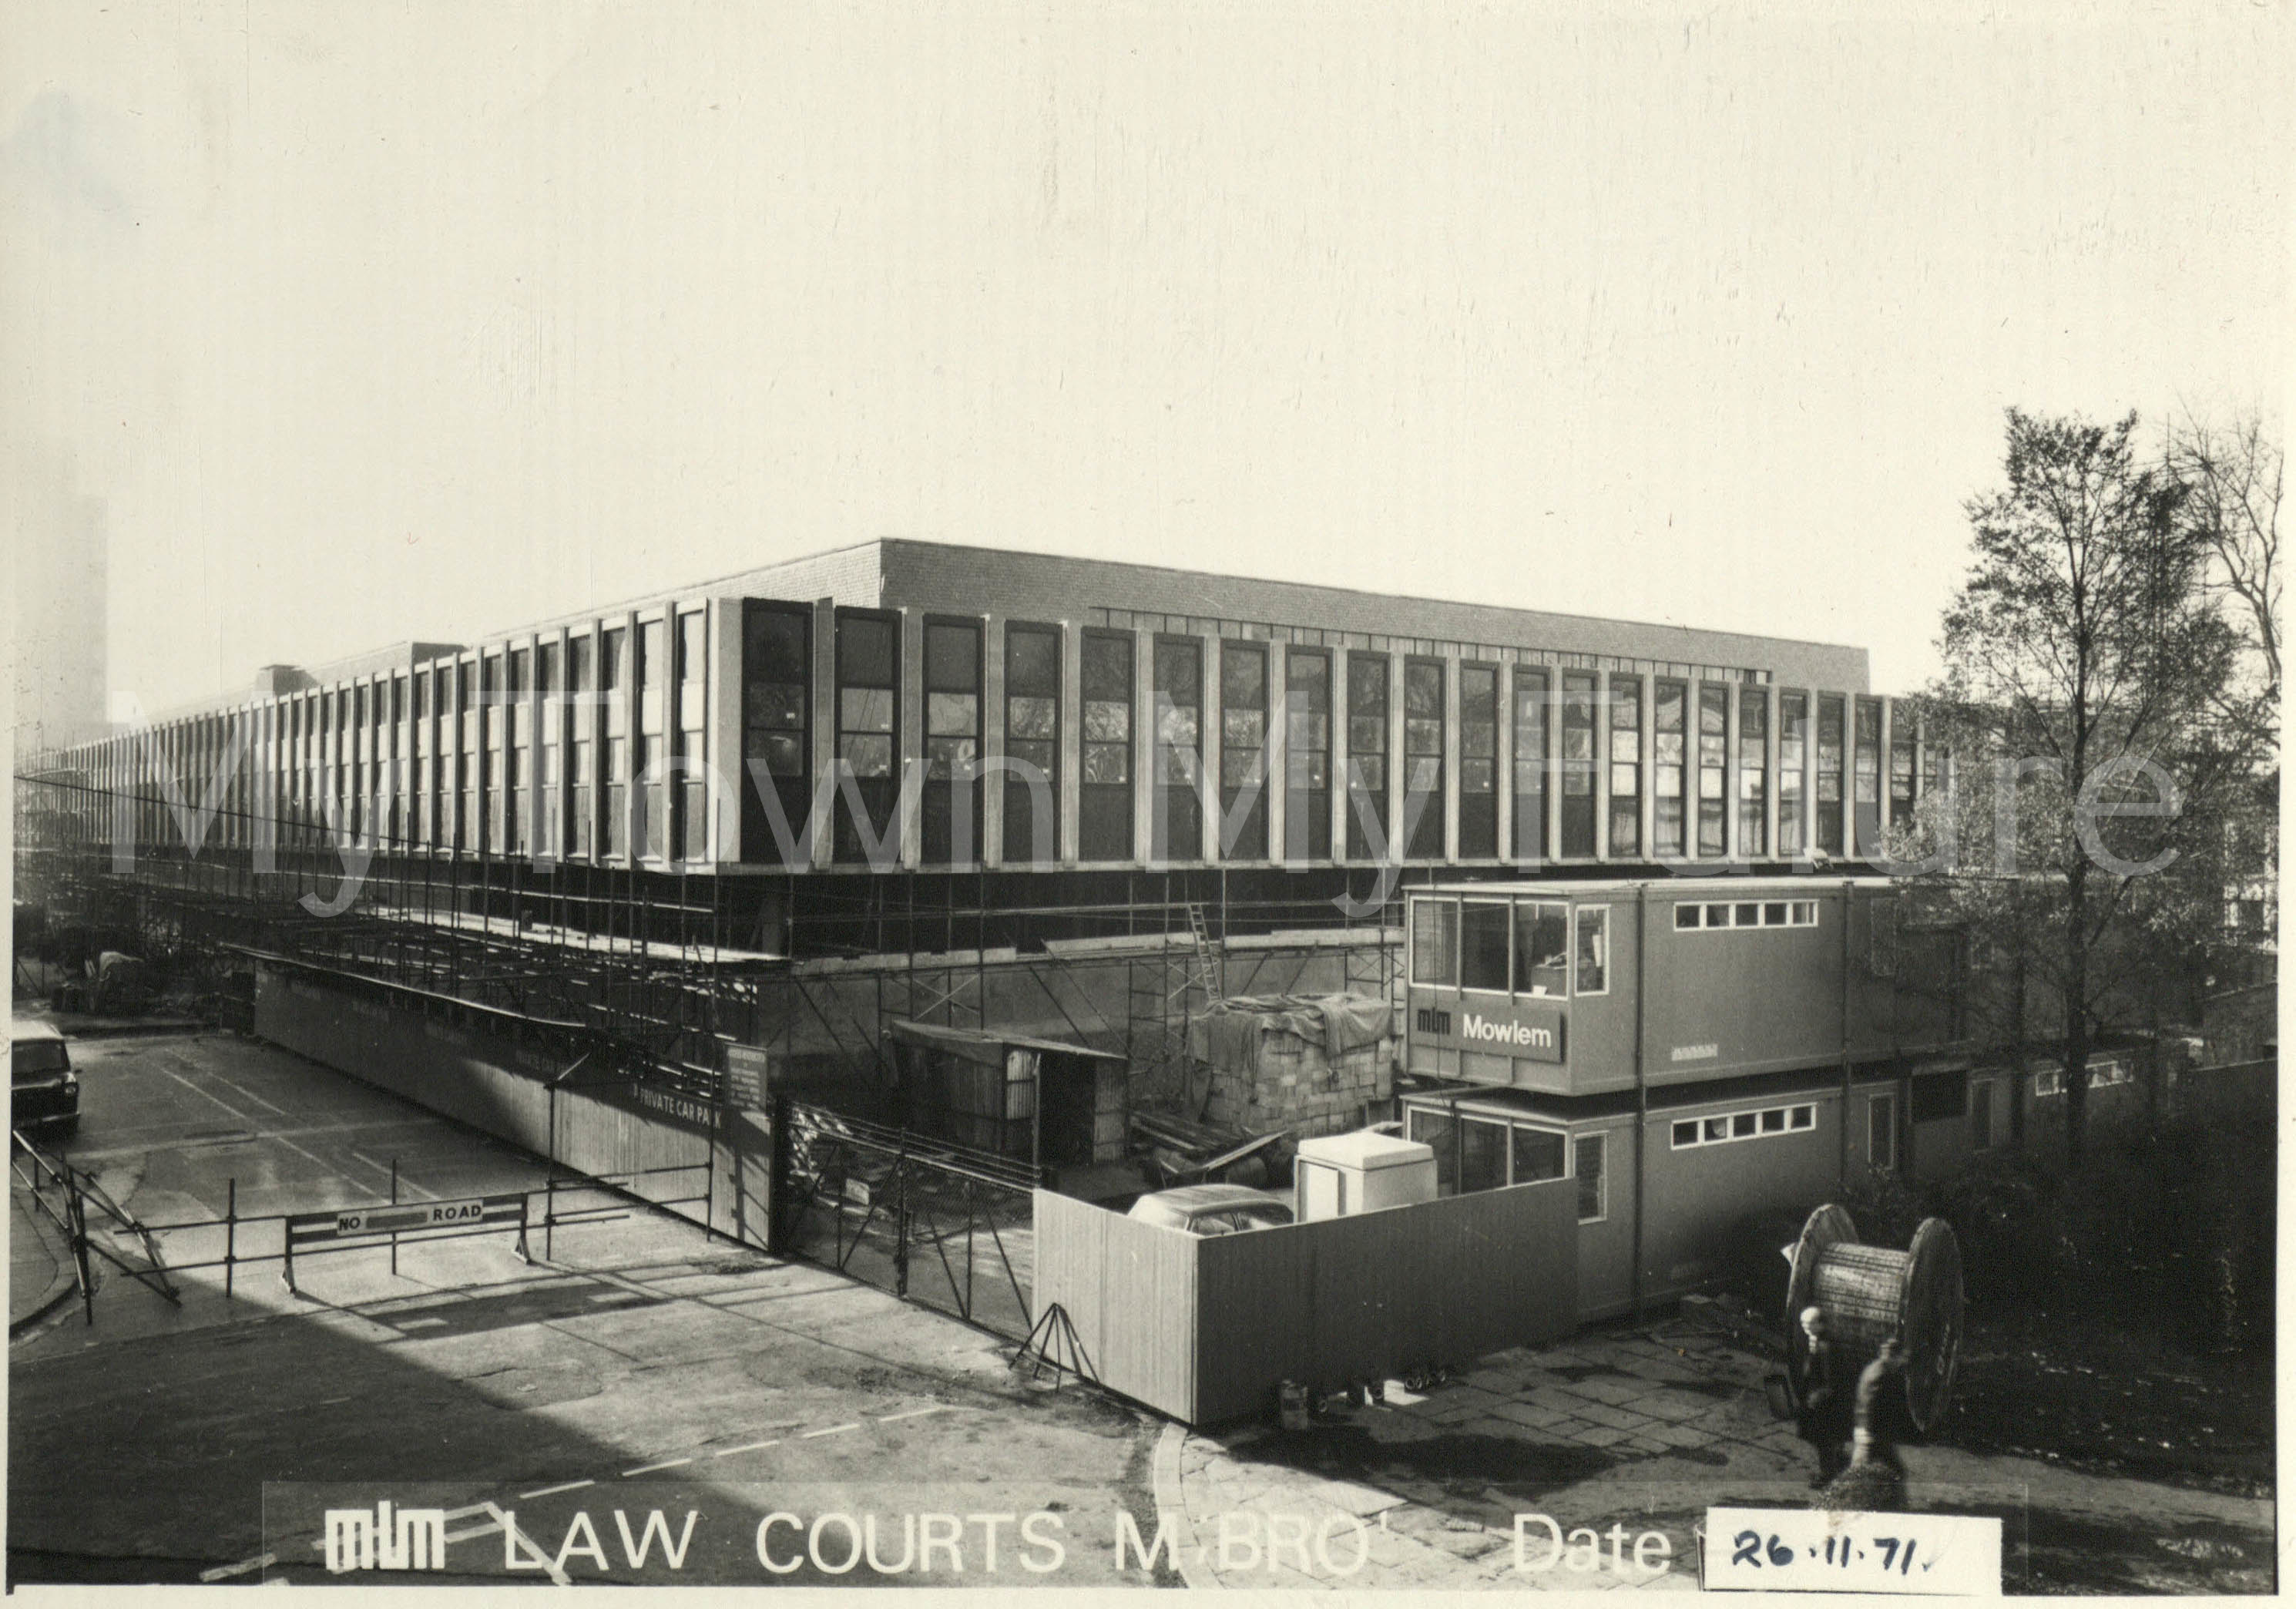 Law Courts (Opened in October 1972), 26th November 1971 - Phillopson Studies- 18 Borough Road West - Middlesbrough